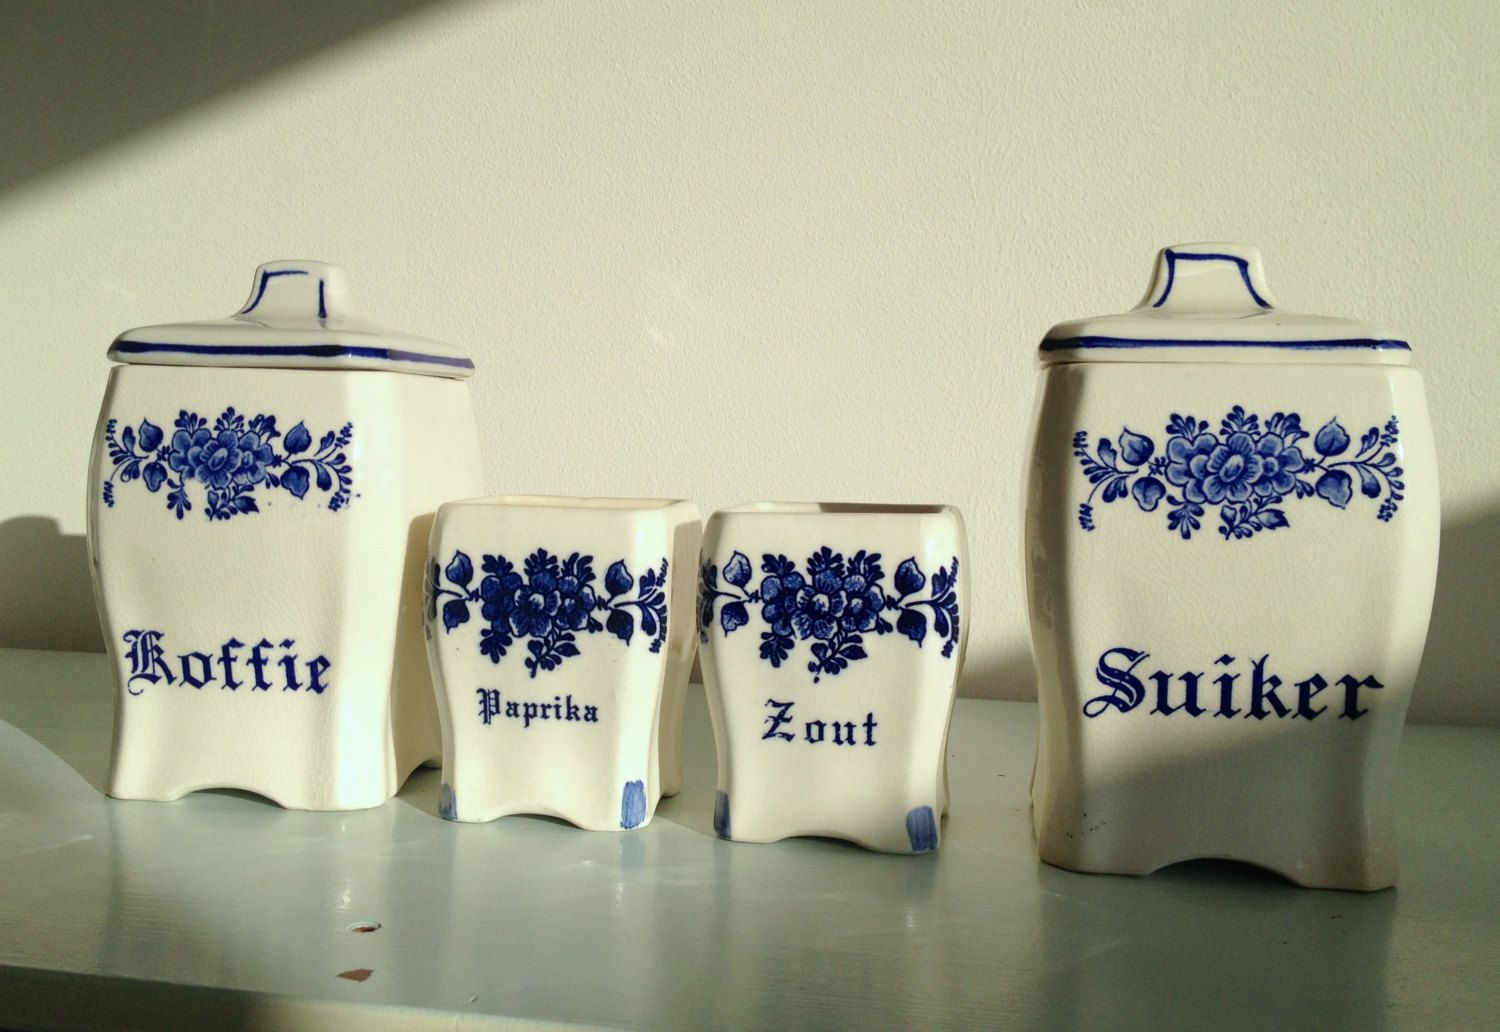 Vintage White Ceramic Kitchen Canister Set Coffee Sugar Spice Jars Containers Dutch Delft Blue Style Blue And White China Ceramic Kitchen Canisters Dutch Decor